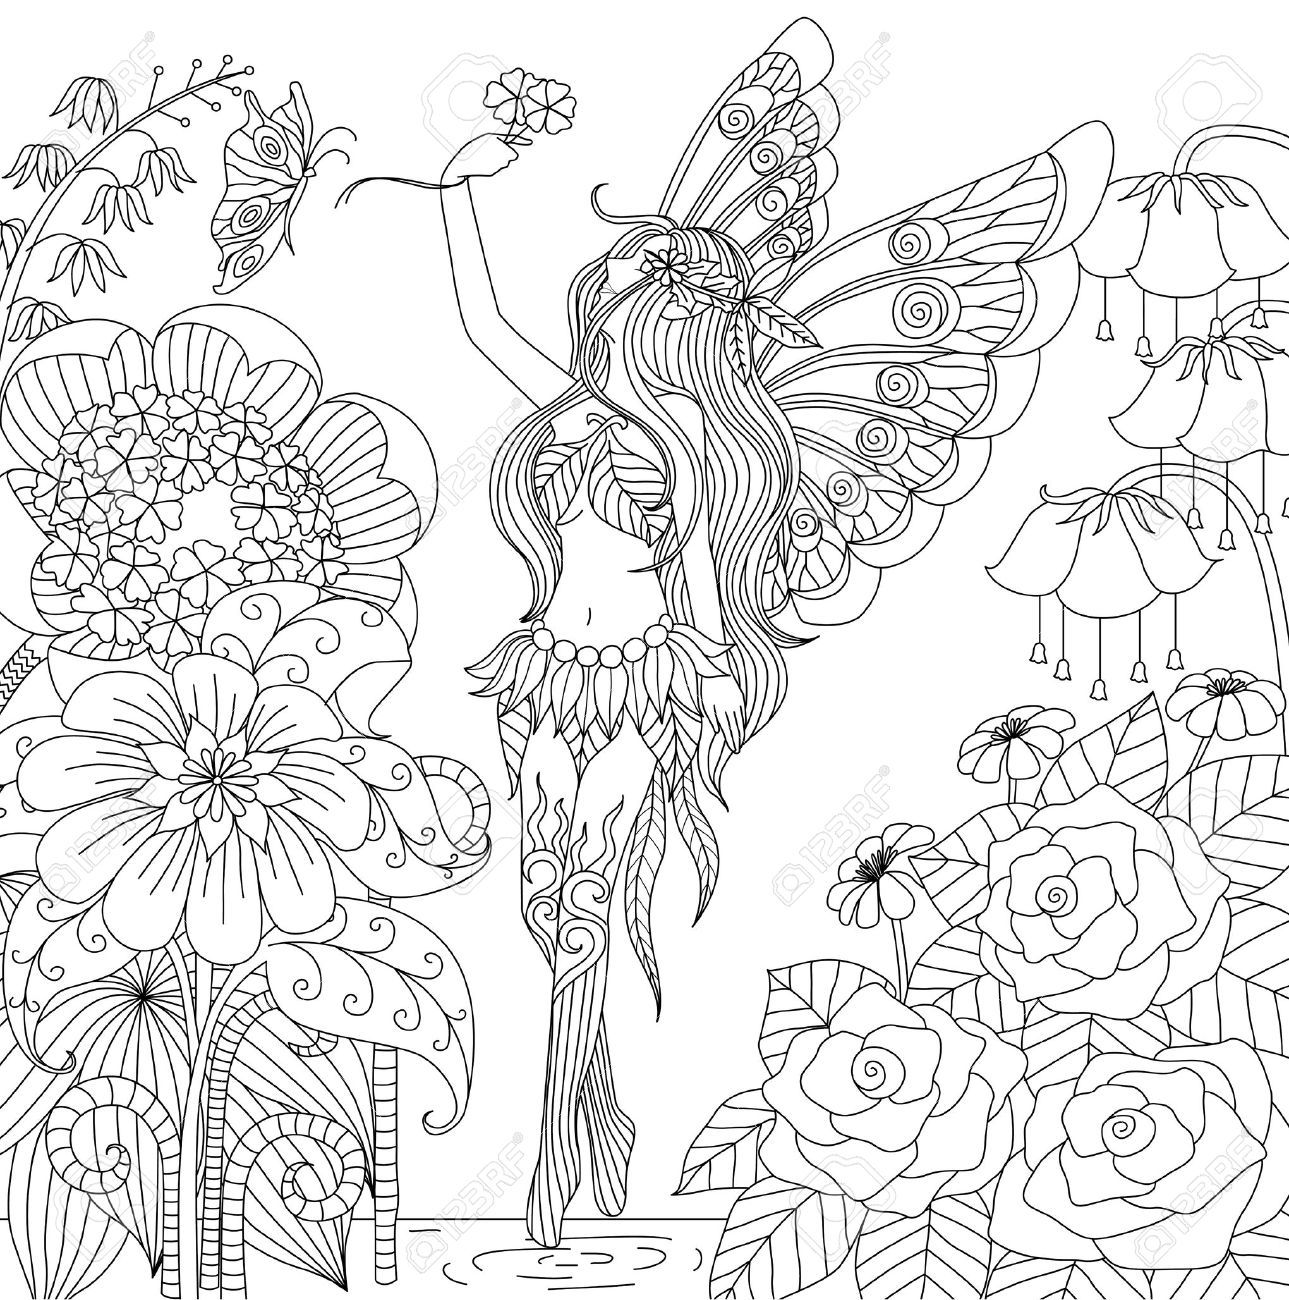 48956833-Hand-drawn-fairy-flying-in-flower-land-for-coloring-book ...